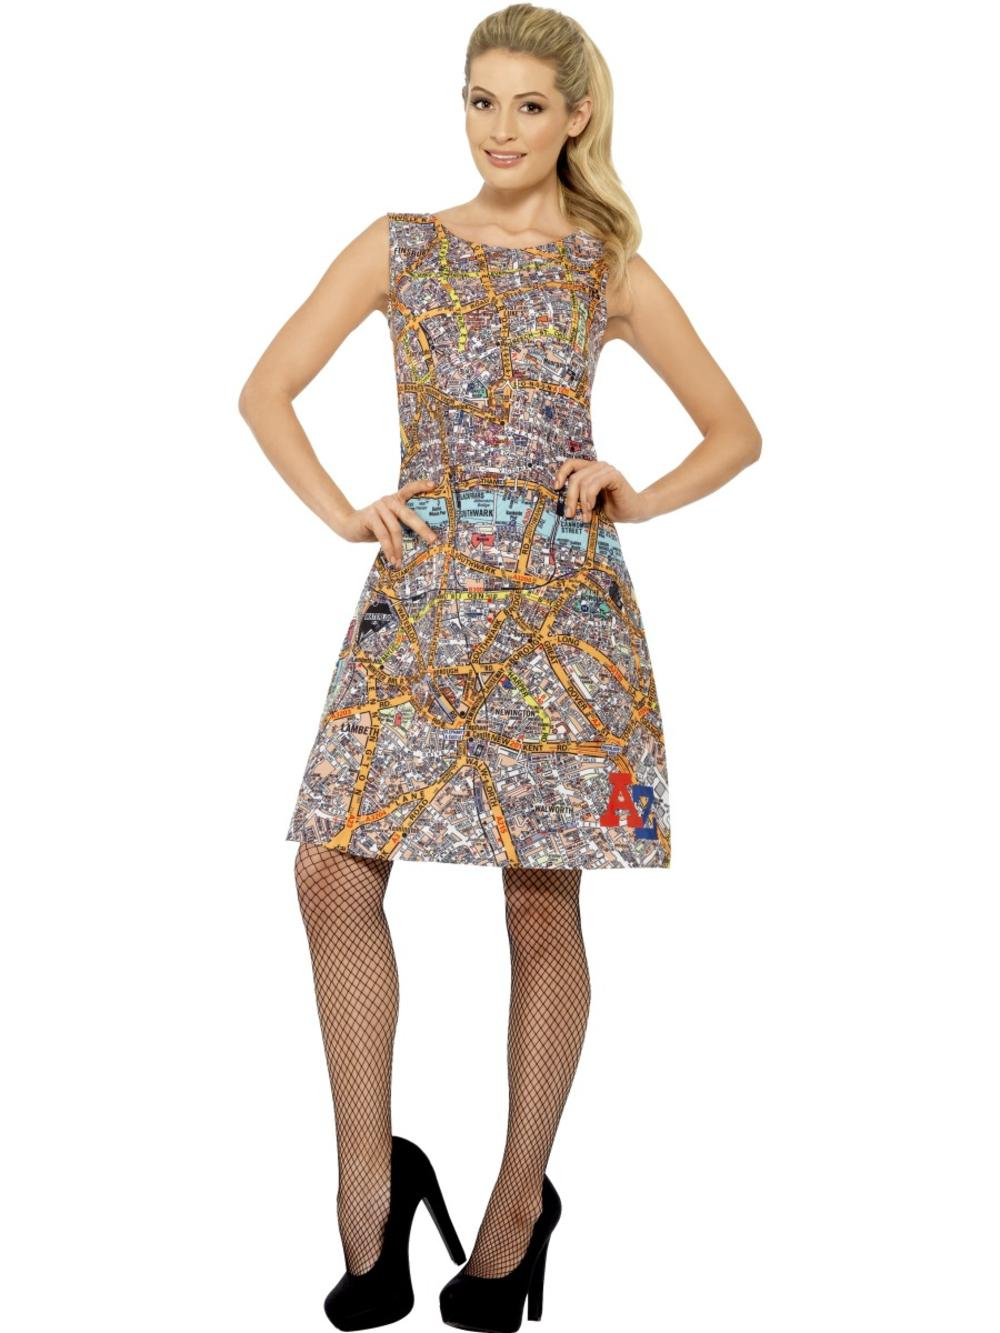 A-Z Ladies Fancy Dress AA Atlas London British Adults Womens Costume Outfit